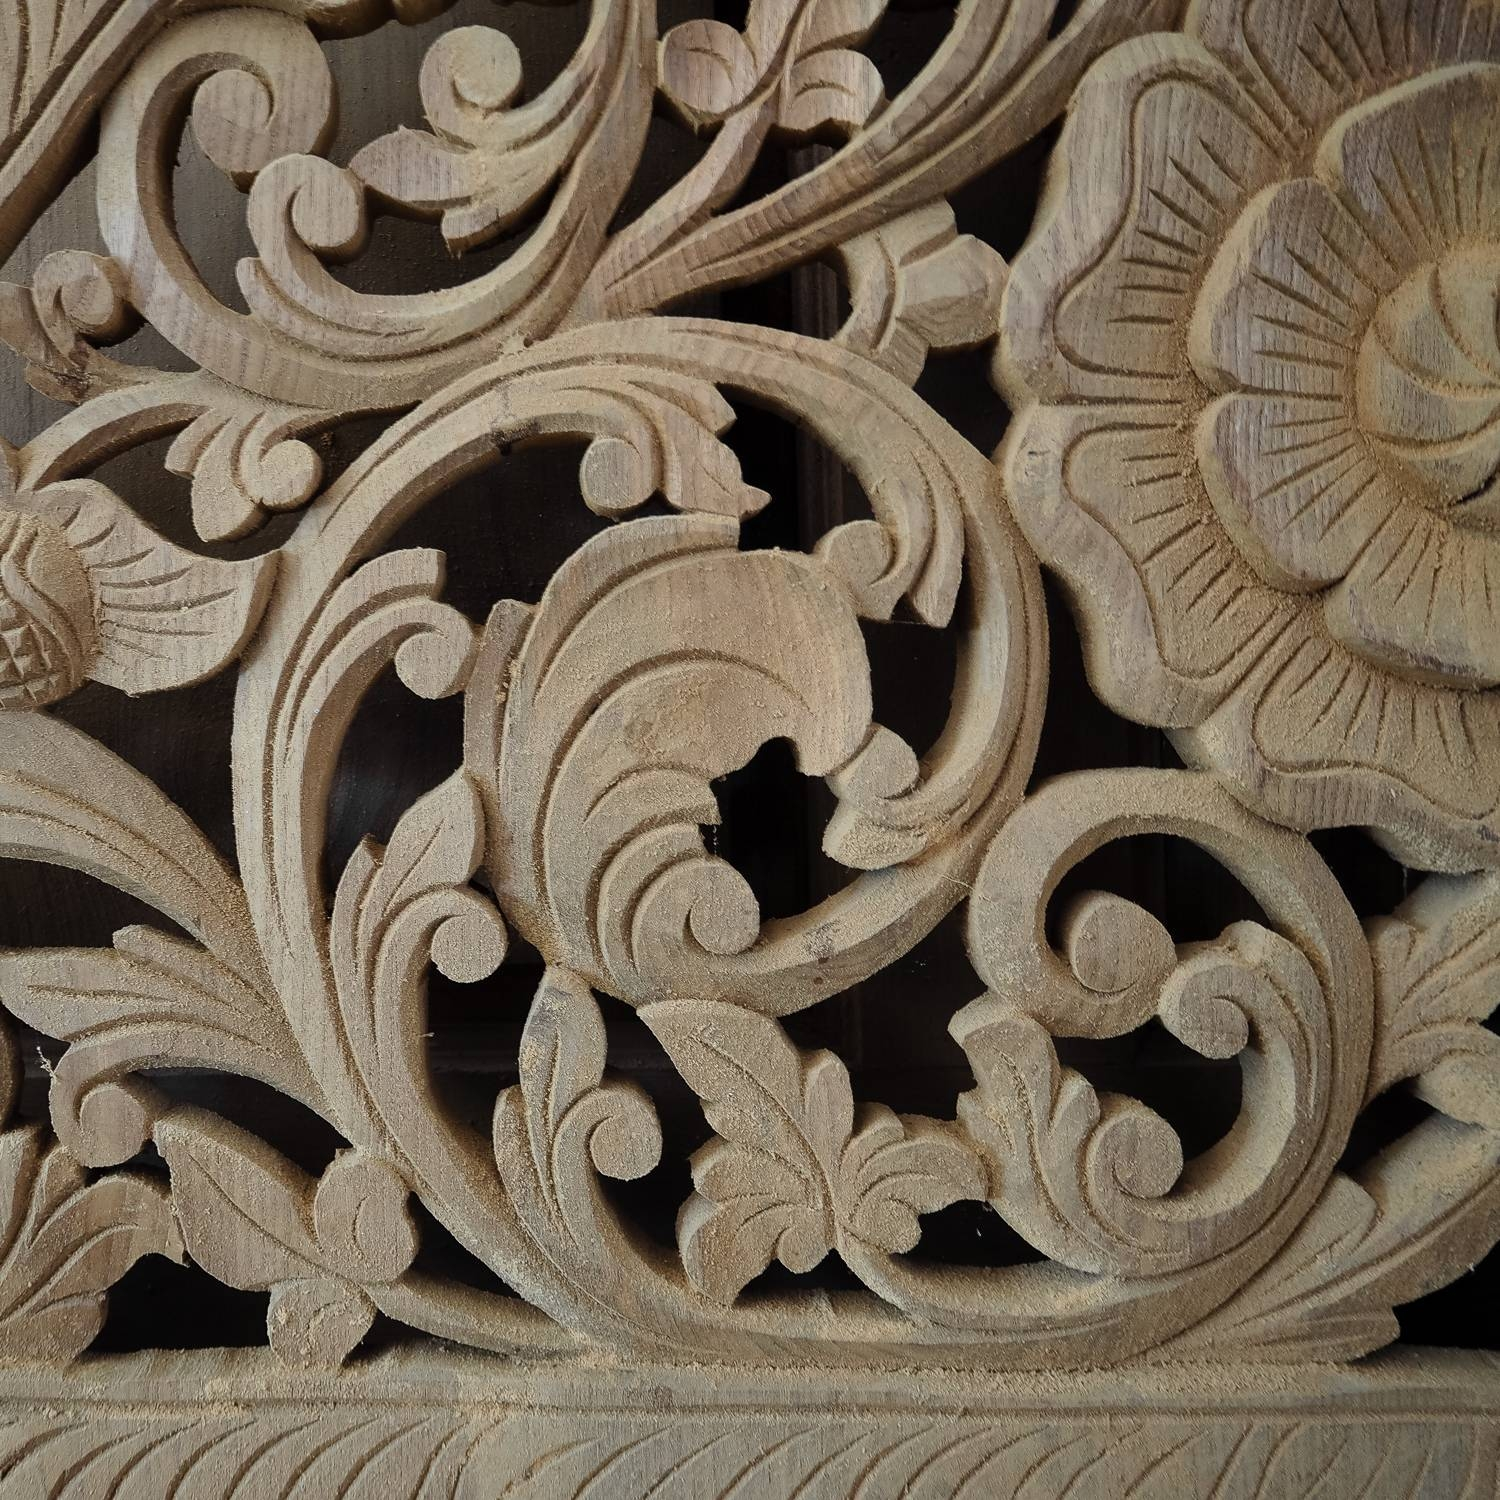 Carved Bed Panel Oriental Wall Art Decor – Siam Sawadee Throughout Current Asian Wall Art Panels (View 6 of 20)